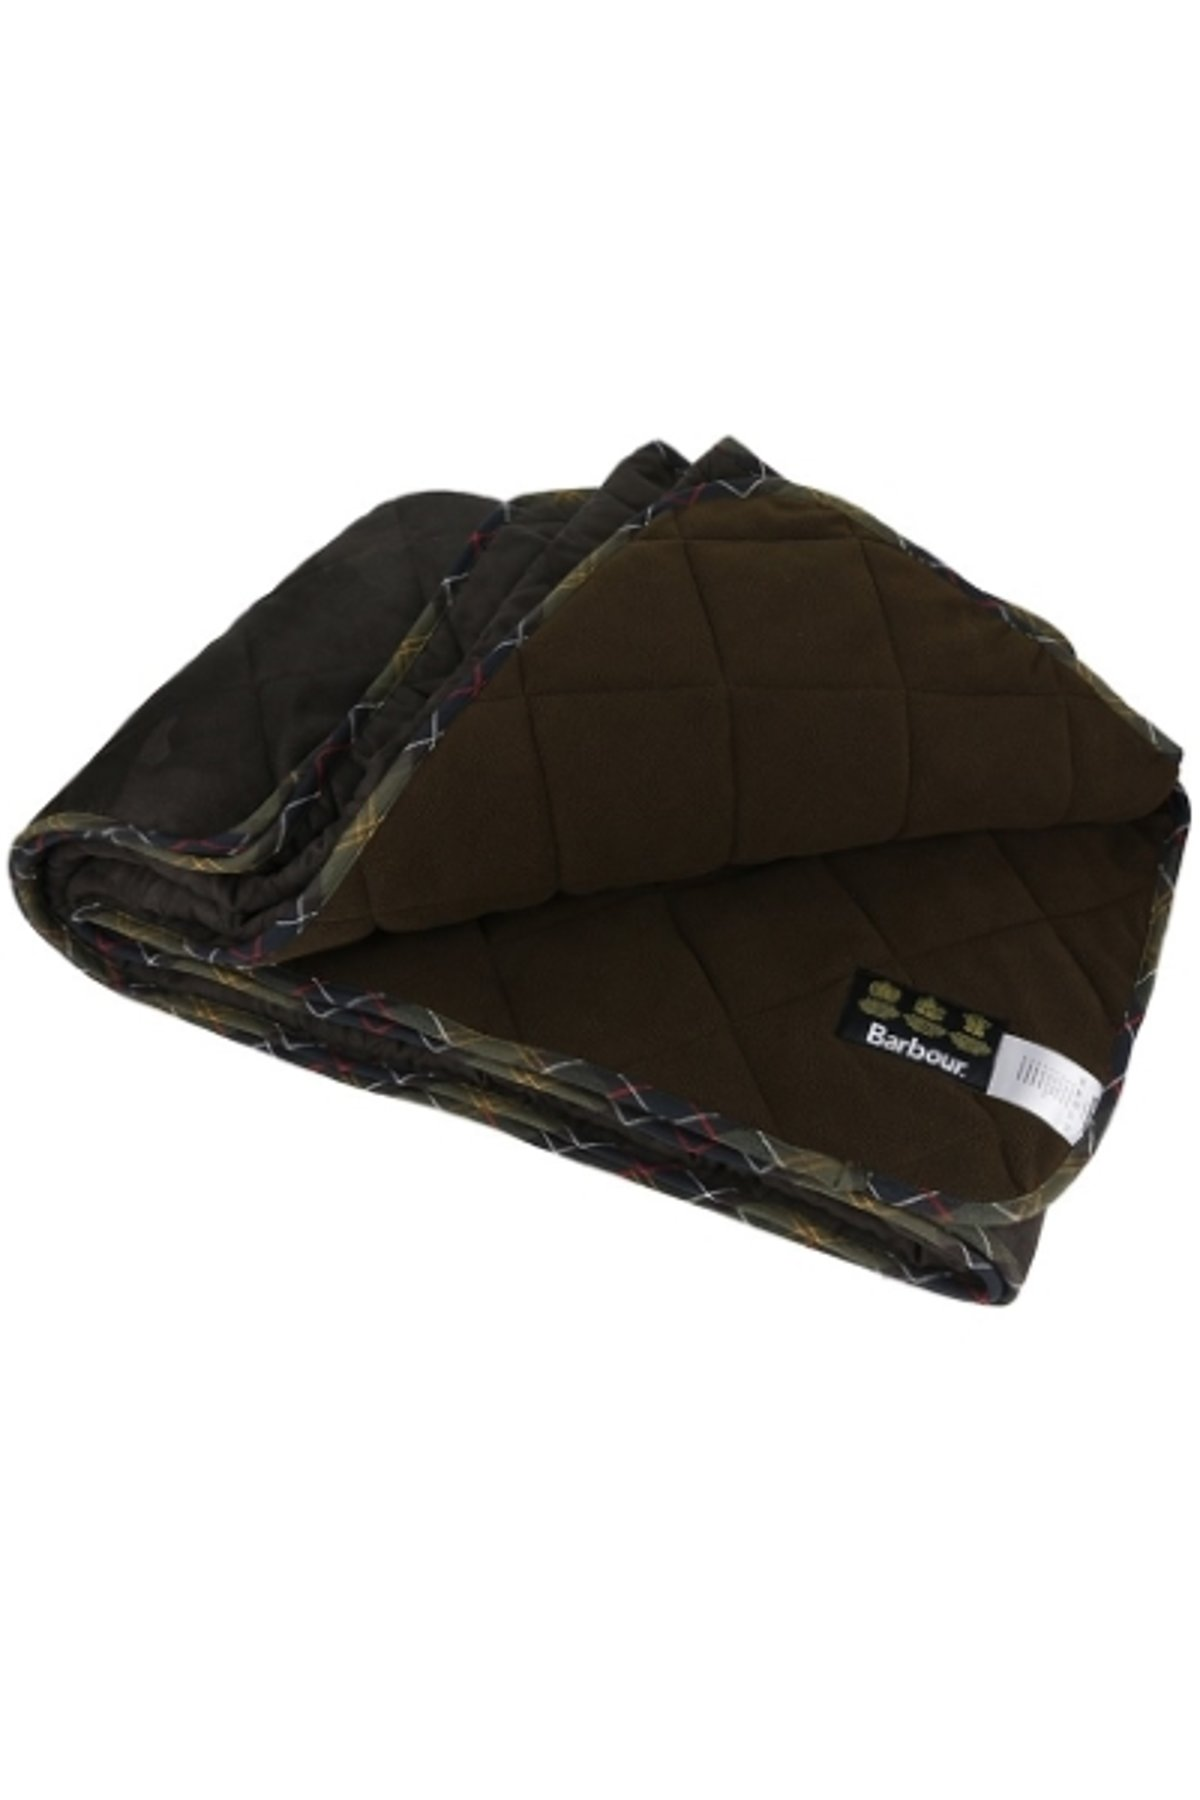 Barbour Luxury Throw